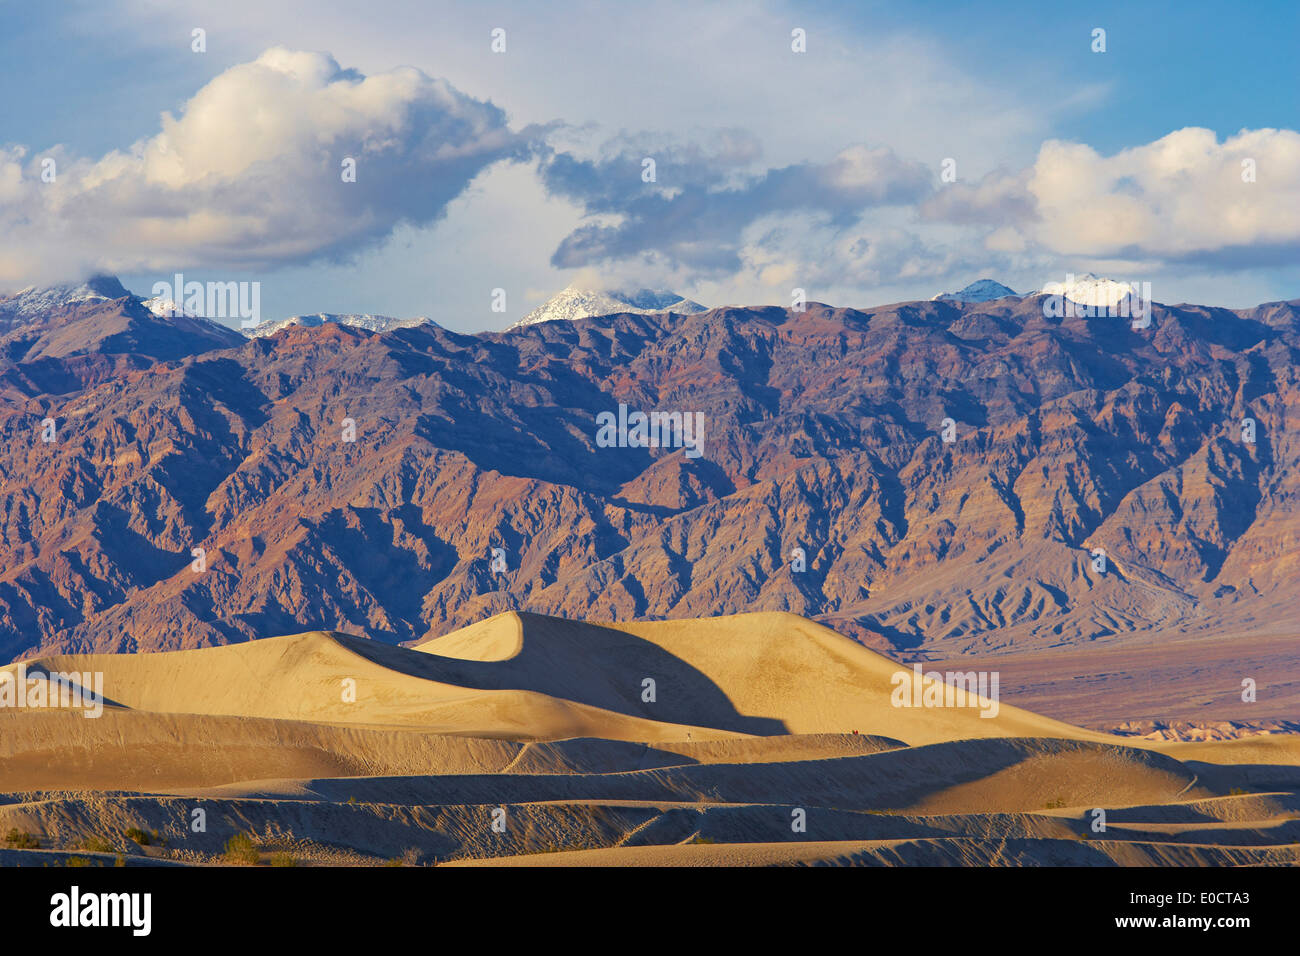 View over Mesquite Flat Sand Dunes onto Amargosa Range in the evening, Death Valley National Park, California, USA, America - Stock Image